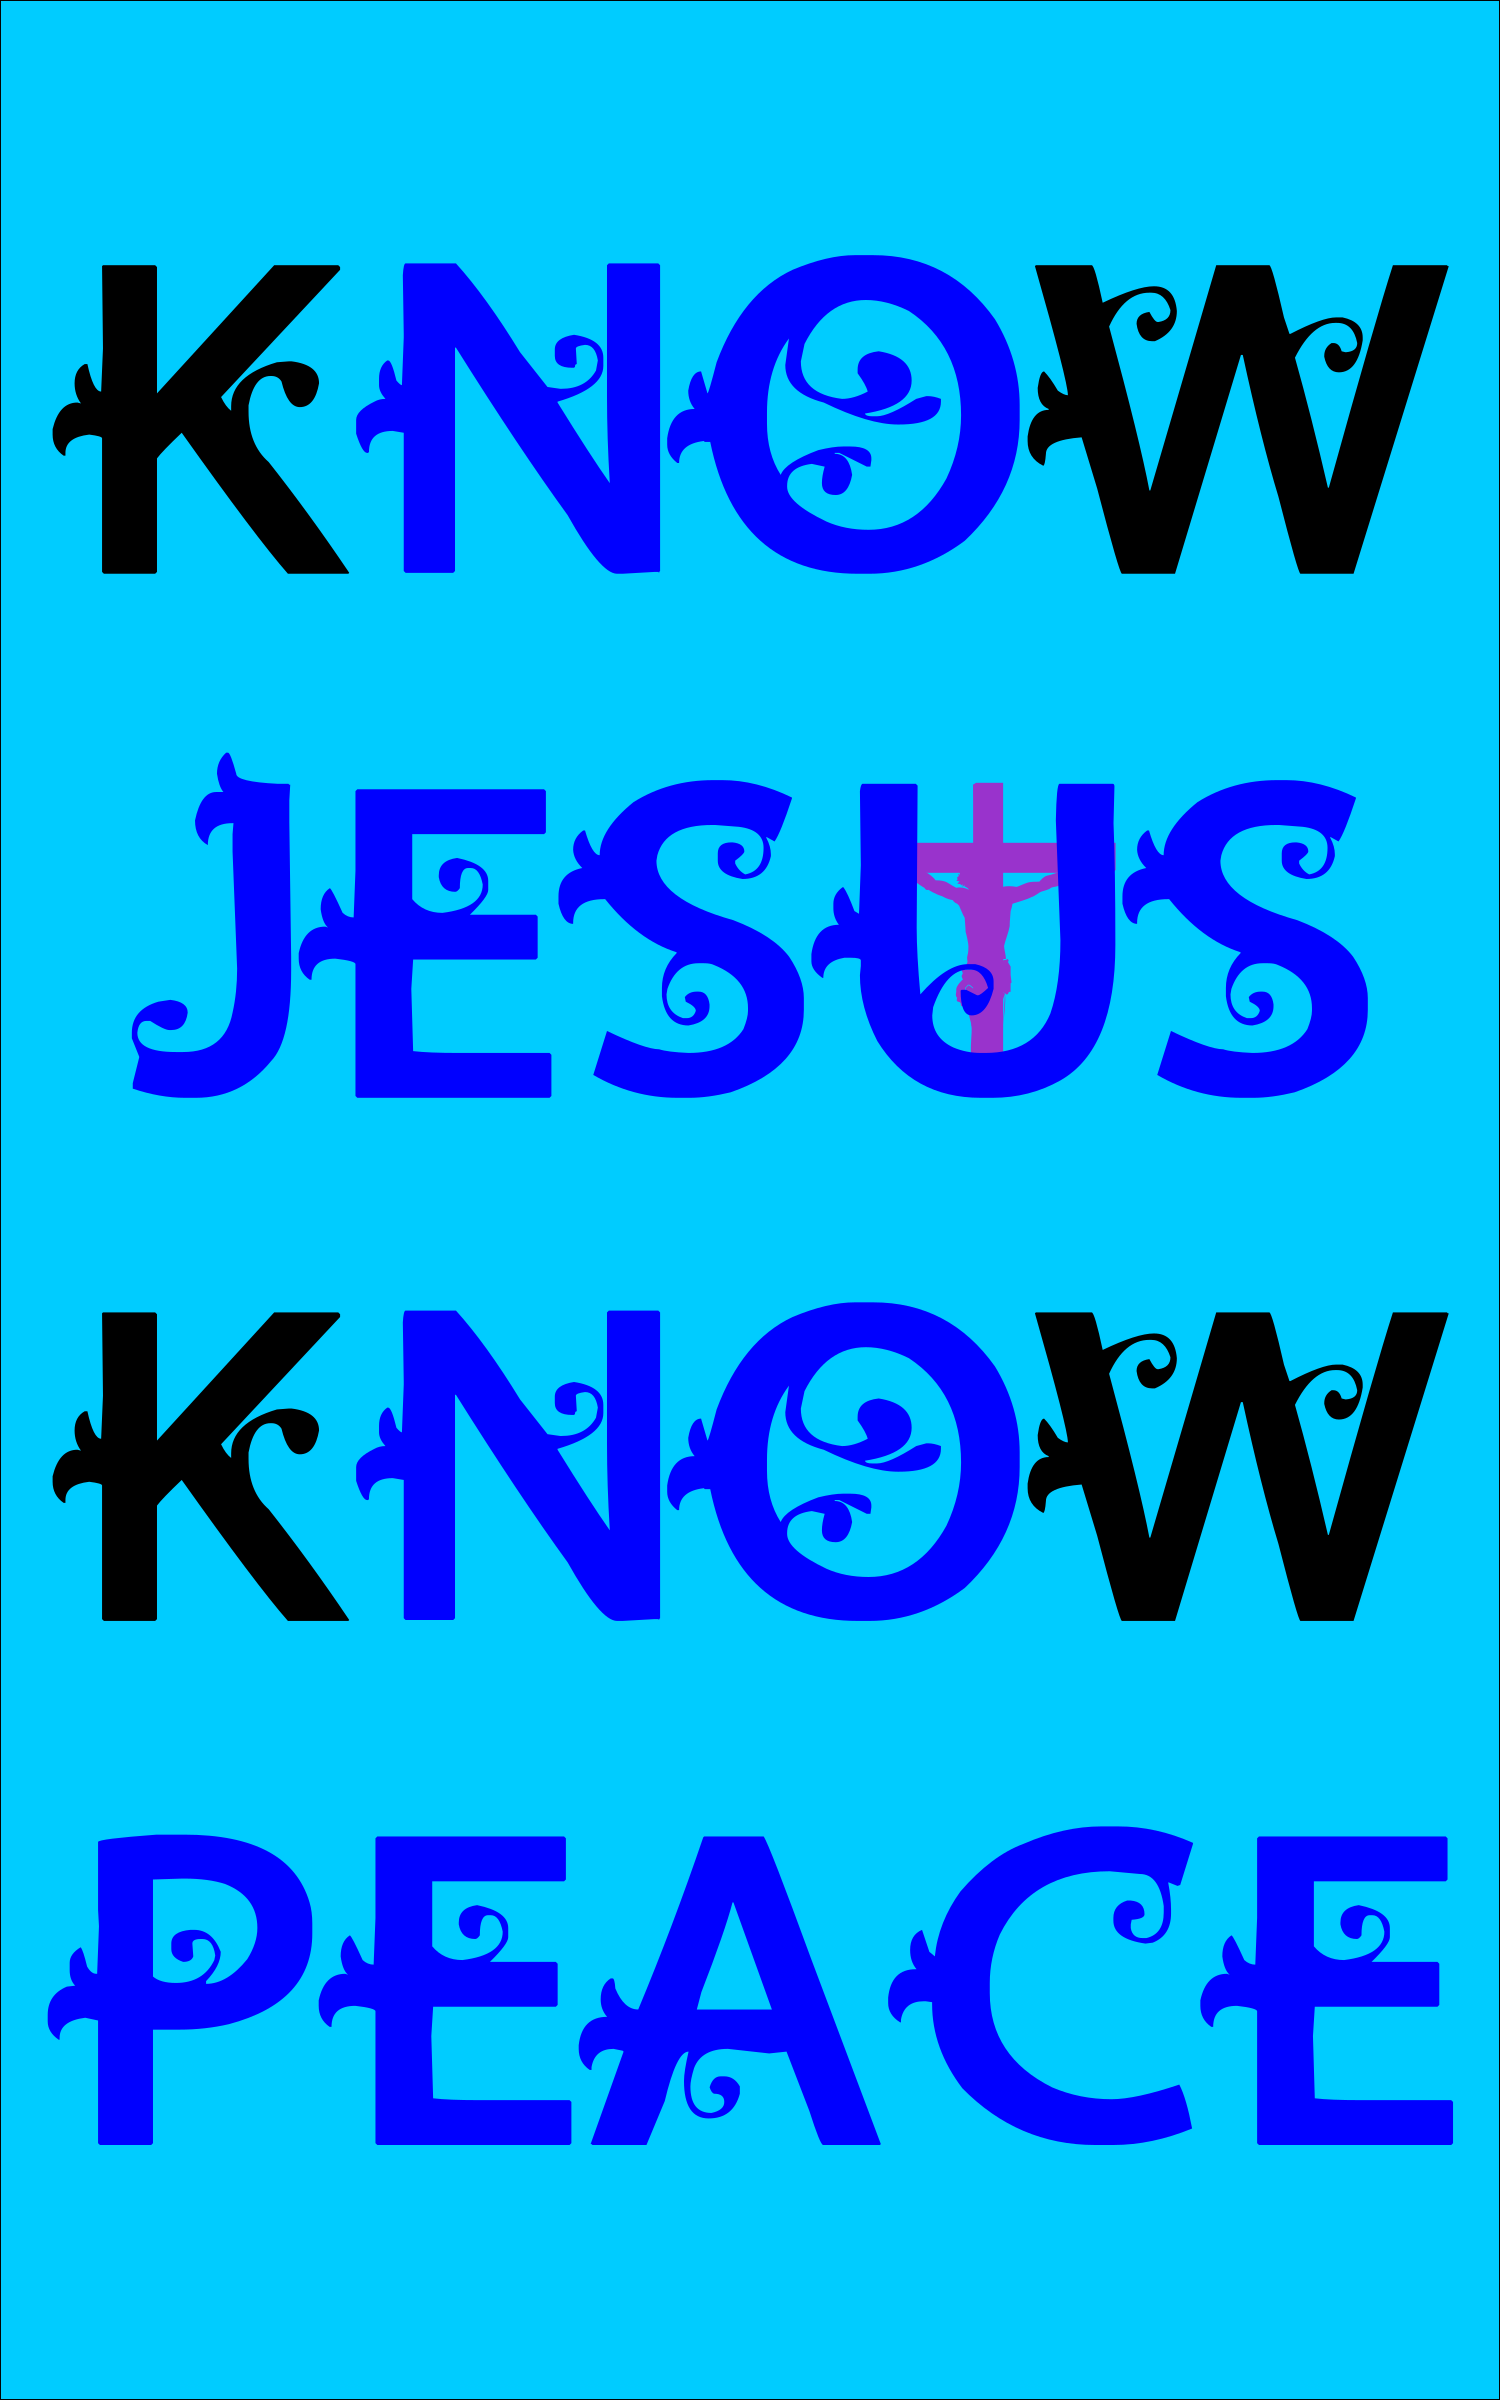 kNOw JESUS kNOw PEACE by GDJ